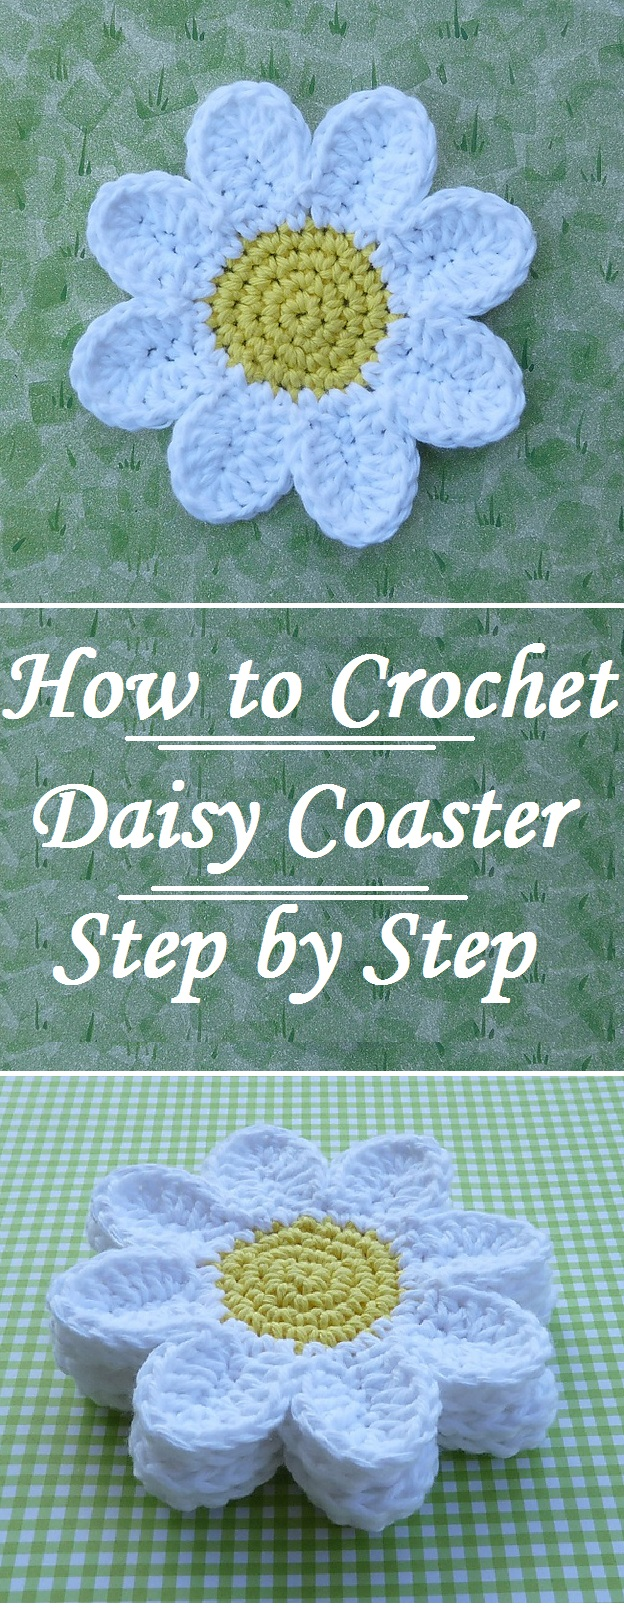 Crochet easy daisy coasters design birdy hello and welcome to design birdy today we would like to share with you an article about crocheting these beautiful super cute and easy daisy flower izmirmasajfo